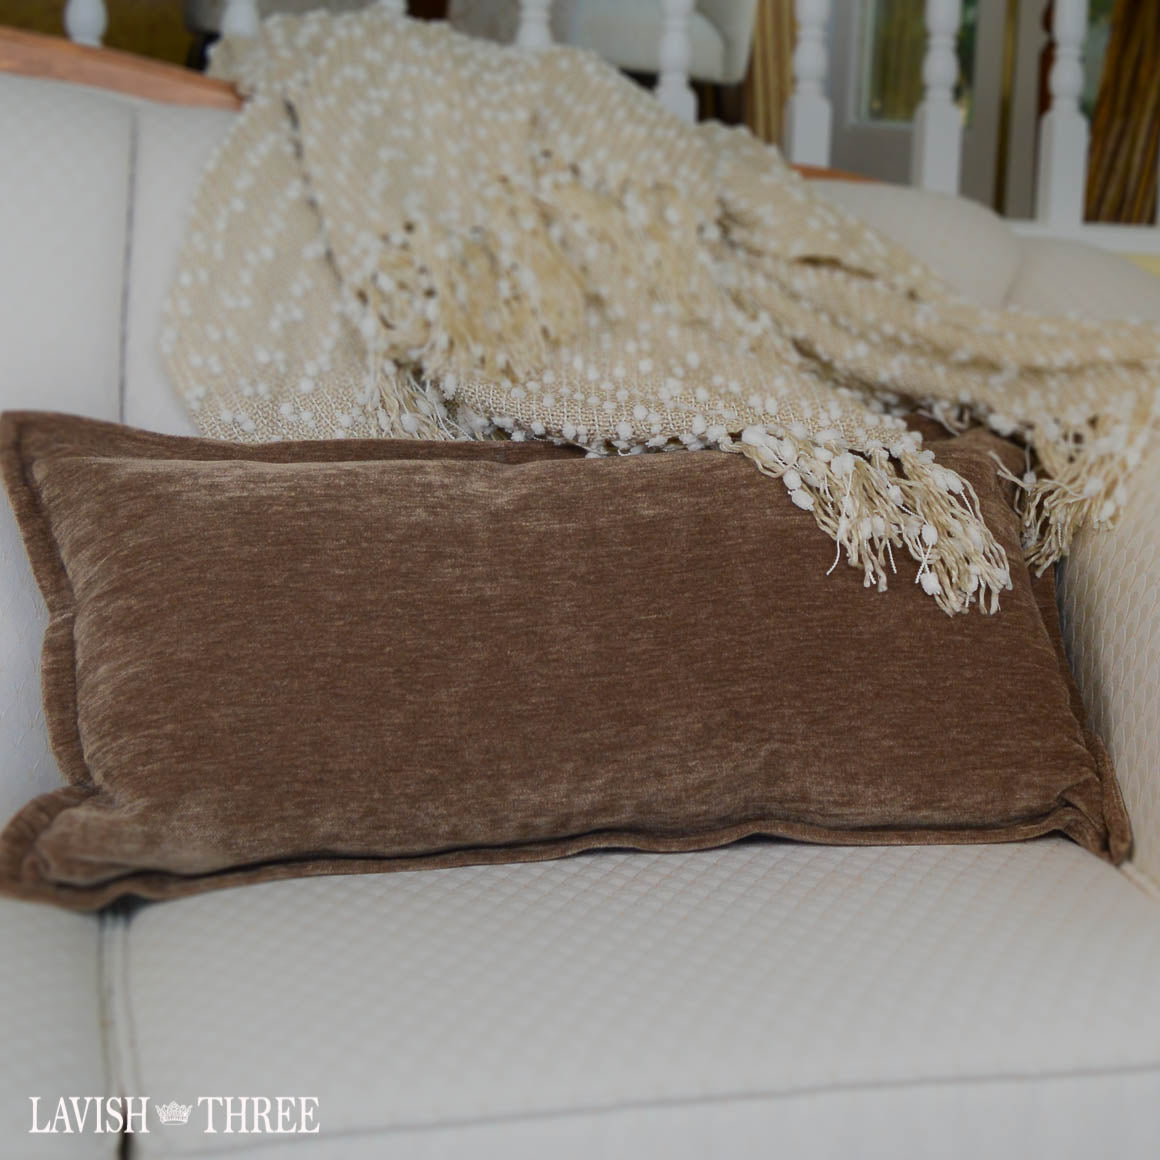 Taupe brown velvet oblong accent throw decoator pillow lavish three 3